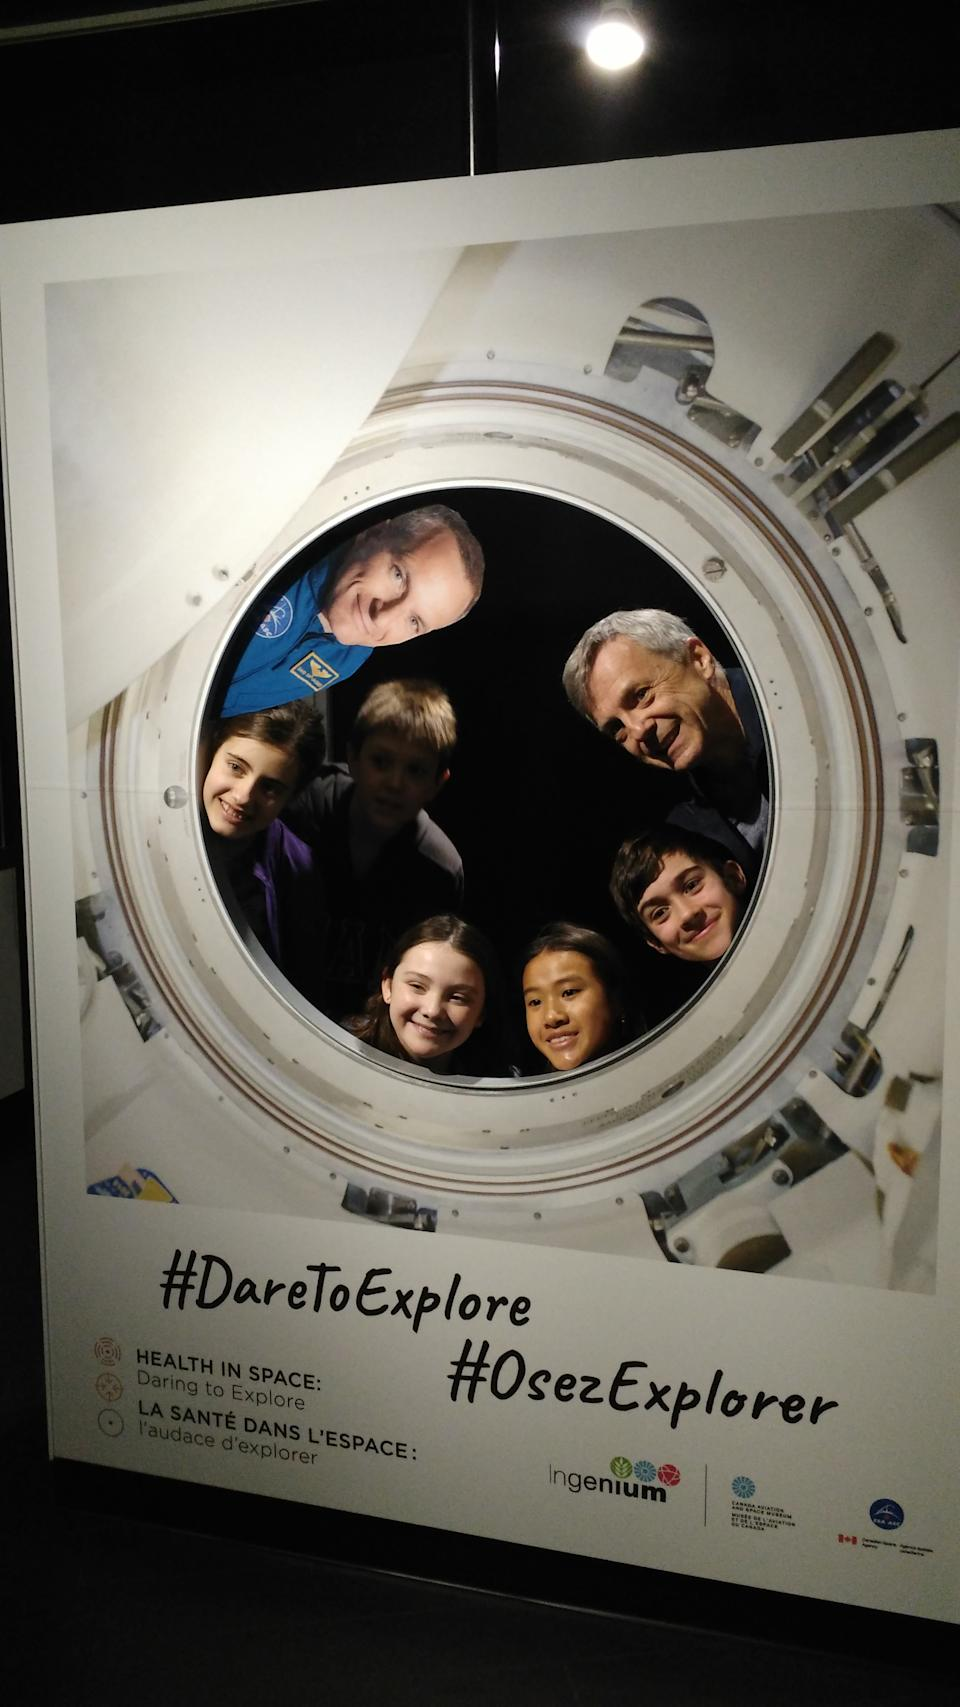 Former Canadian astronaut Robert Thirsk (top right) poses with schoolchildren at a new museum exhibit at the Canada Aviation and Space Museum in Ottawa on Feb. 7, 2019. The exhibit highlights the contributions of medical space technology to astronaut and consumer health. It also features astronaut doctors such as David Saint-Jacques. A flat picture of Saint-Jacques is displayed at top left. <cite>Elizabeth Howell</cite>